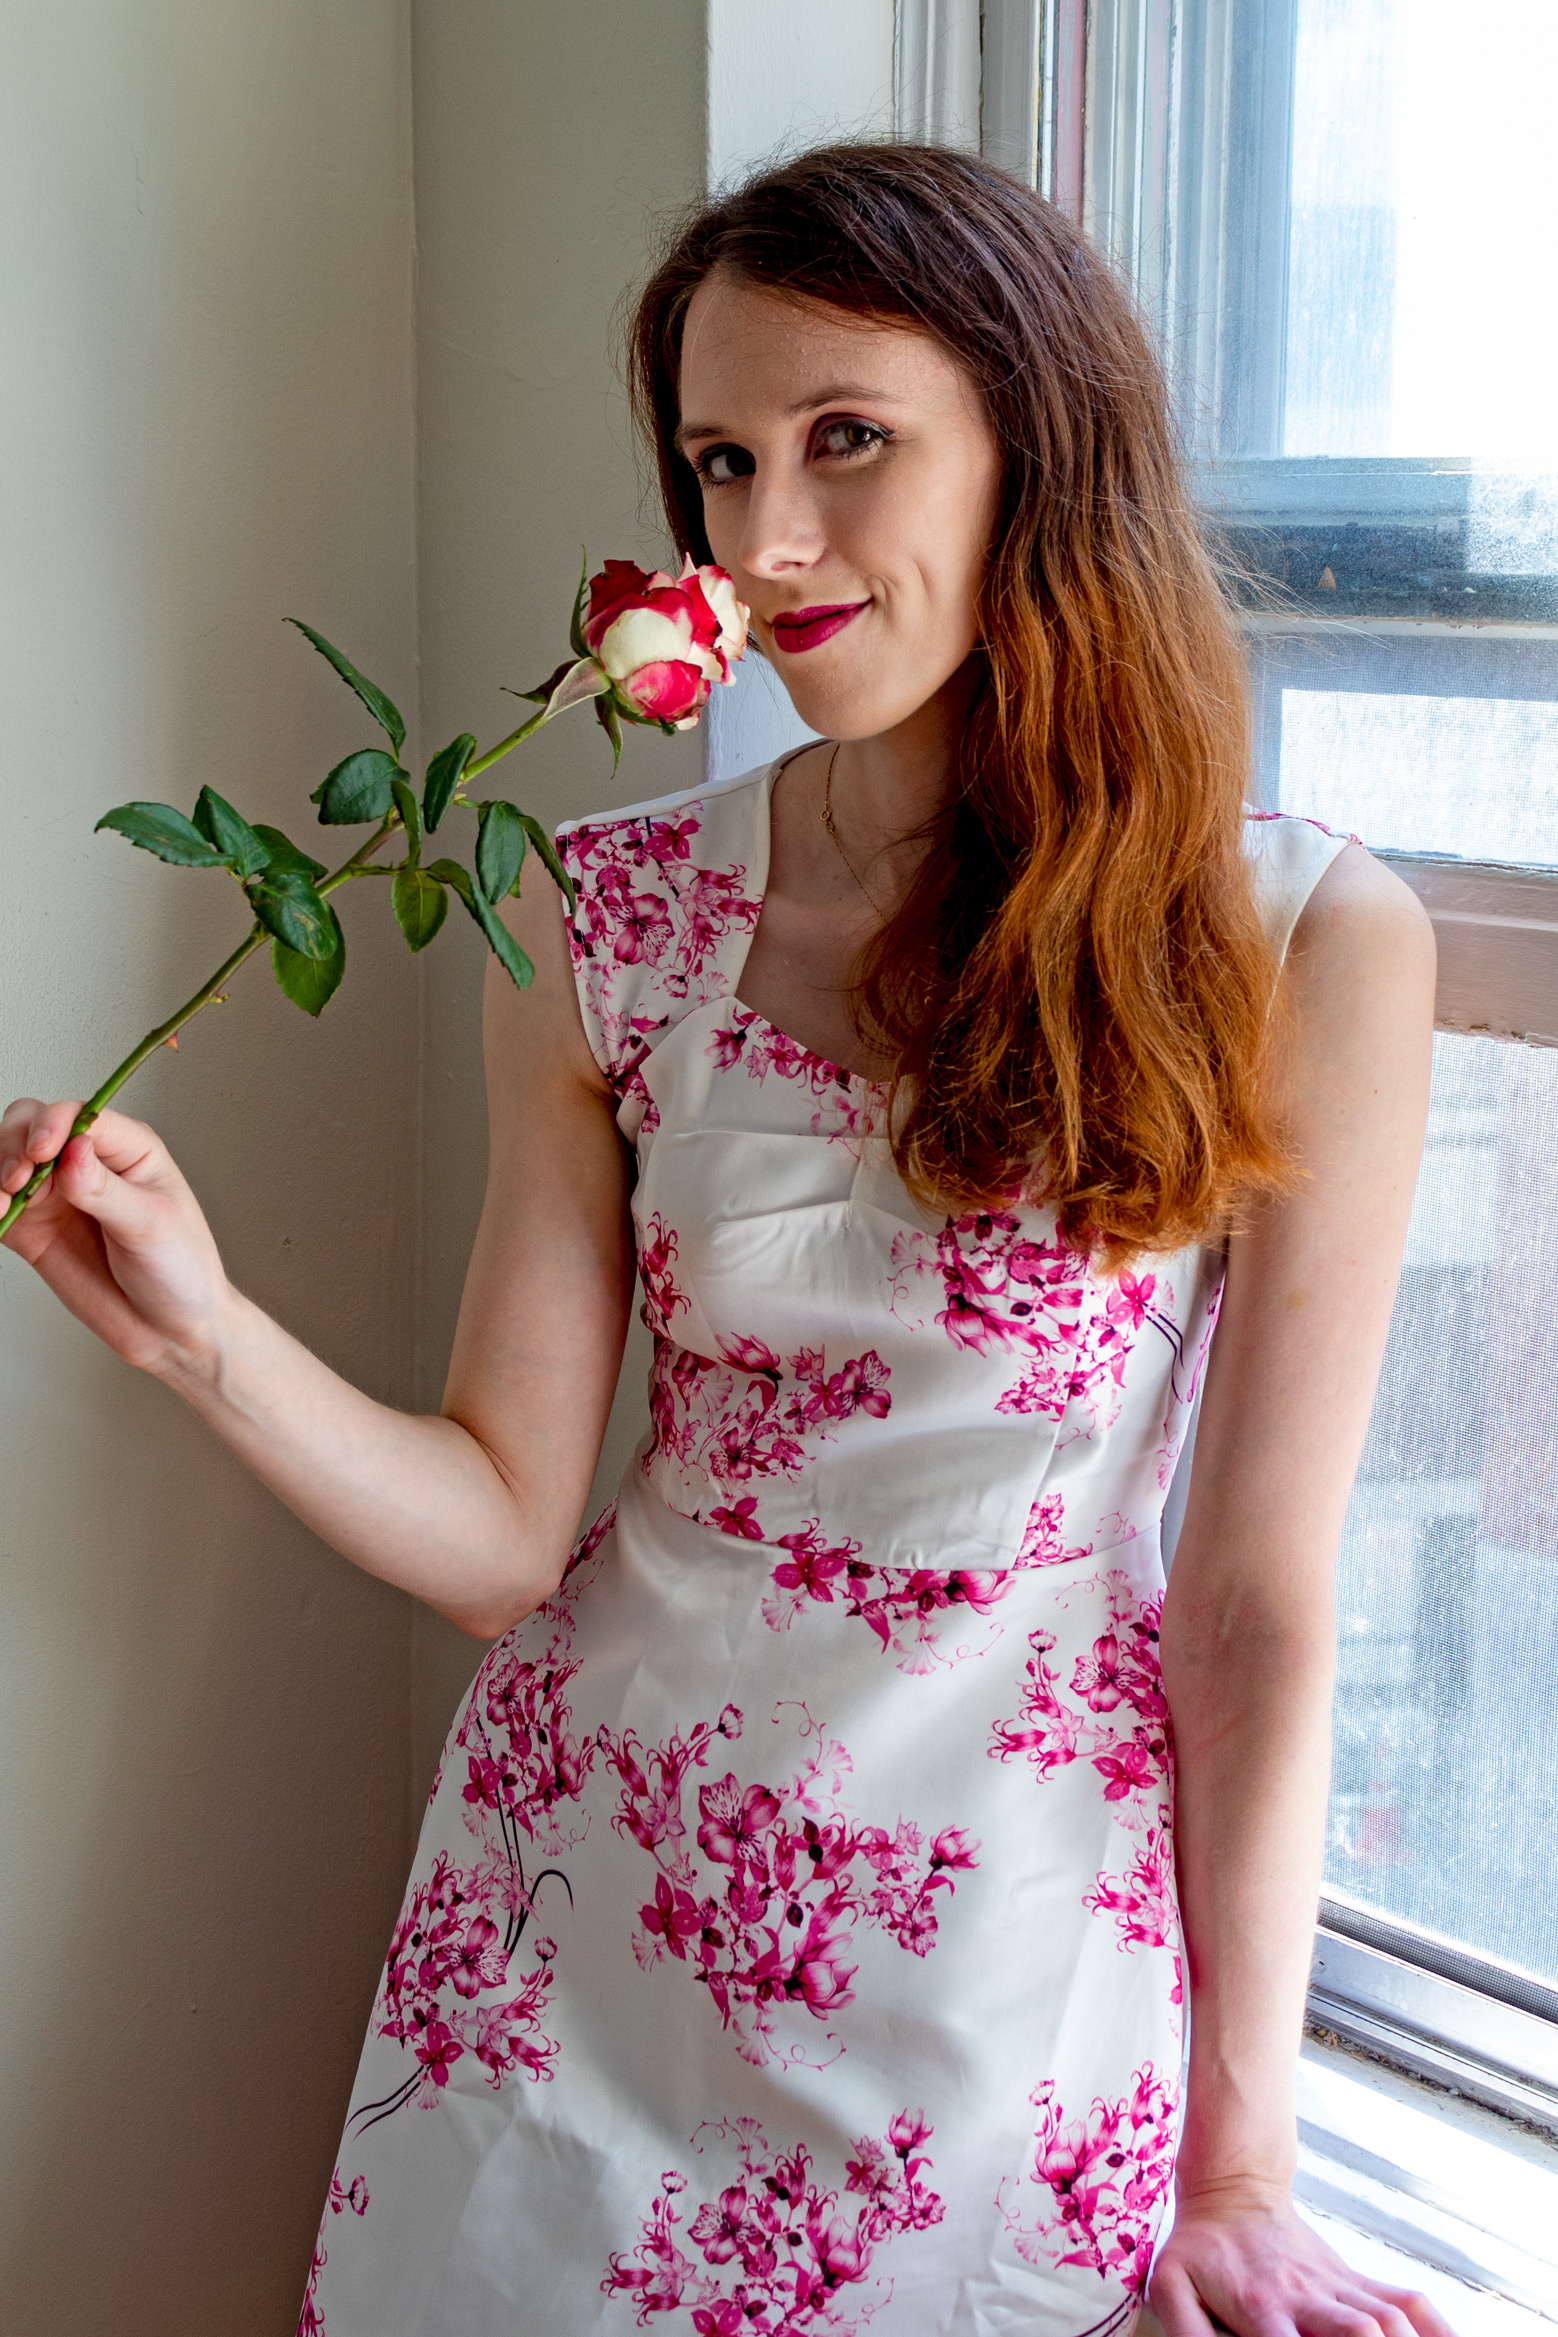 Woman leaning against a window while holding a rose up to her nose